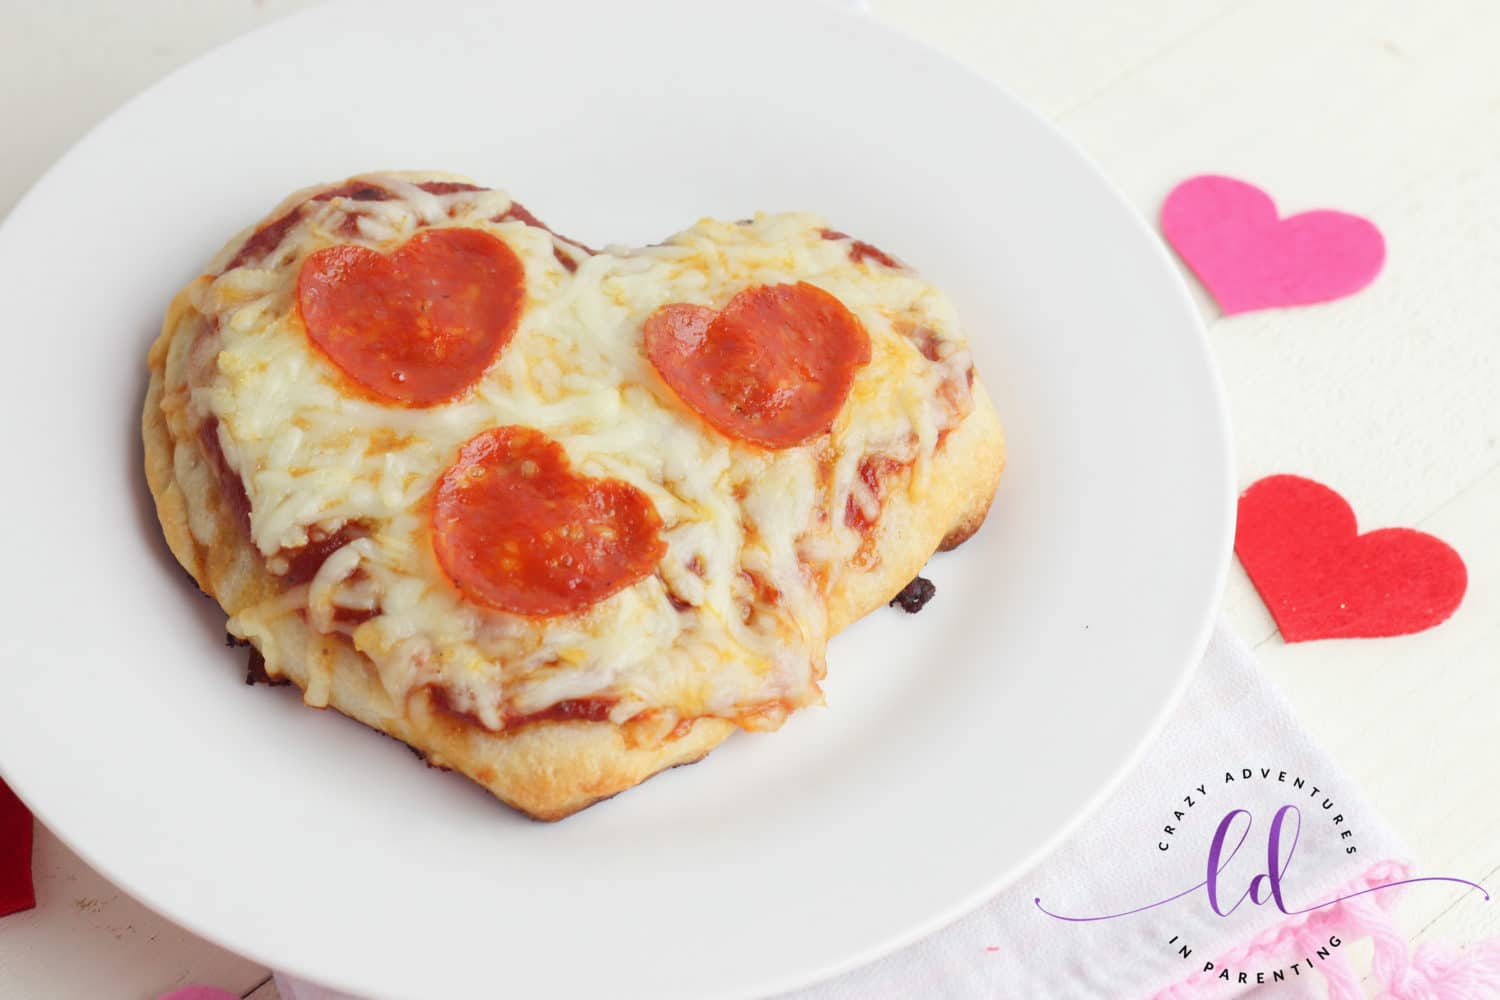 Heart-Shaped Pizza for Valentine's Day Ready to Eat